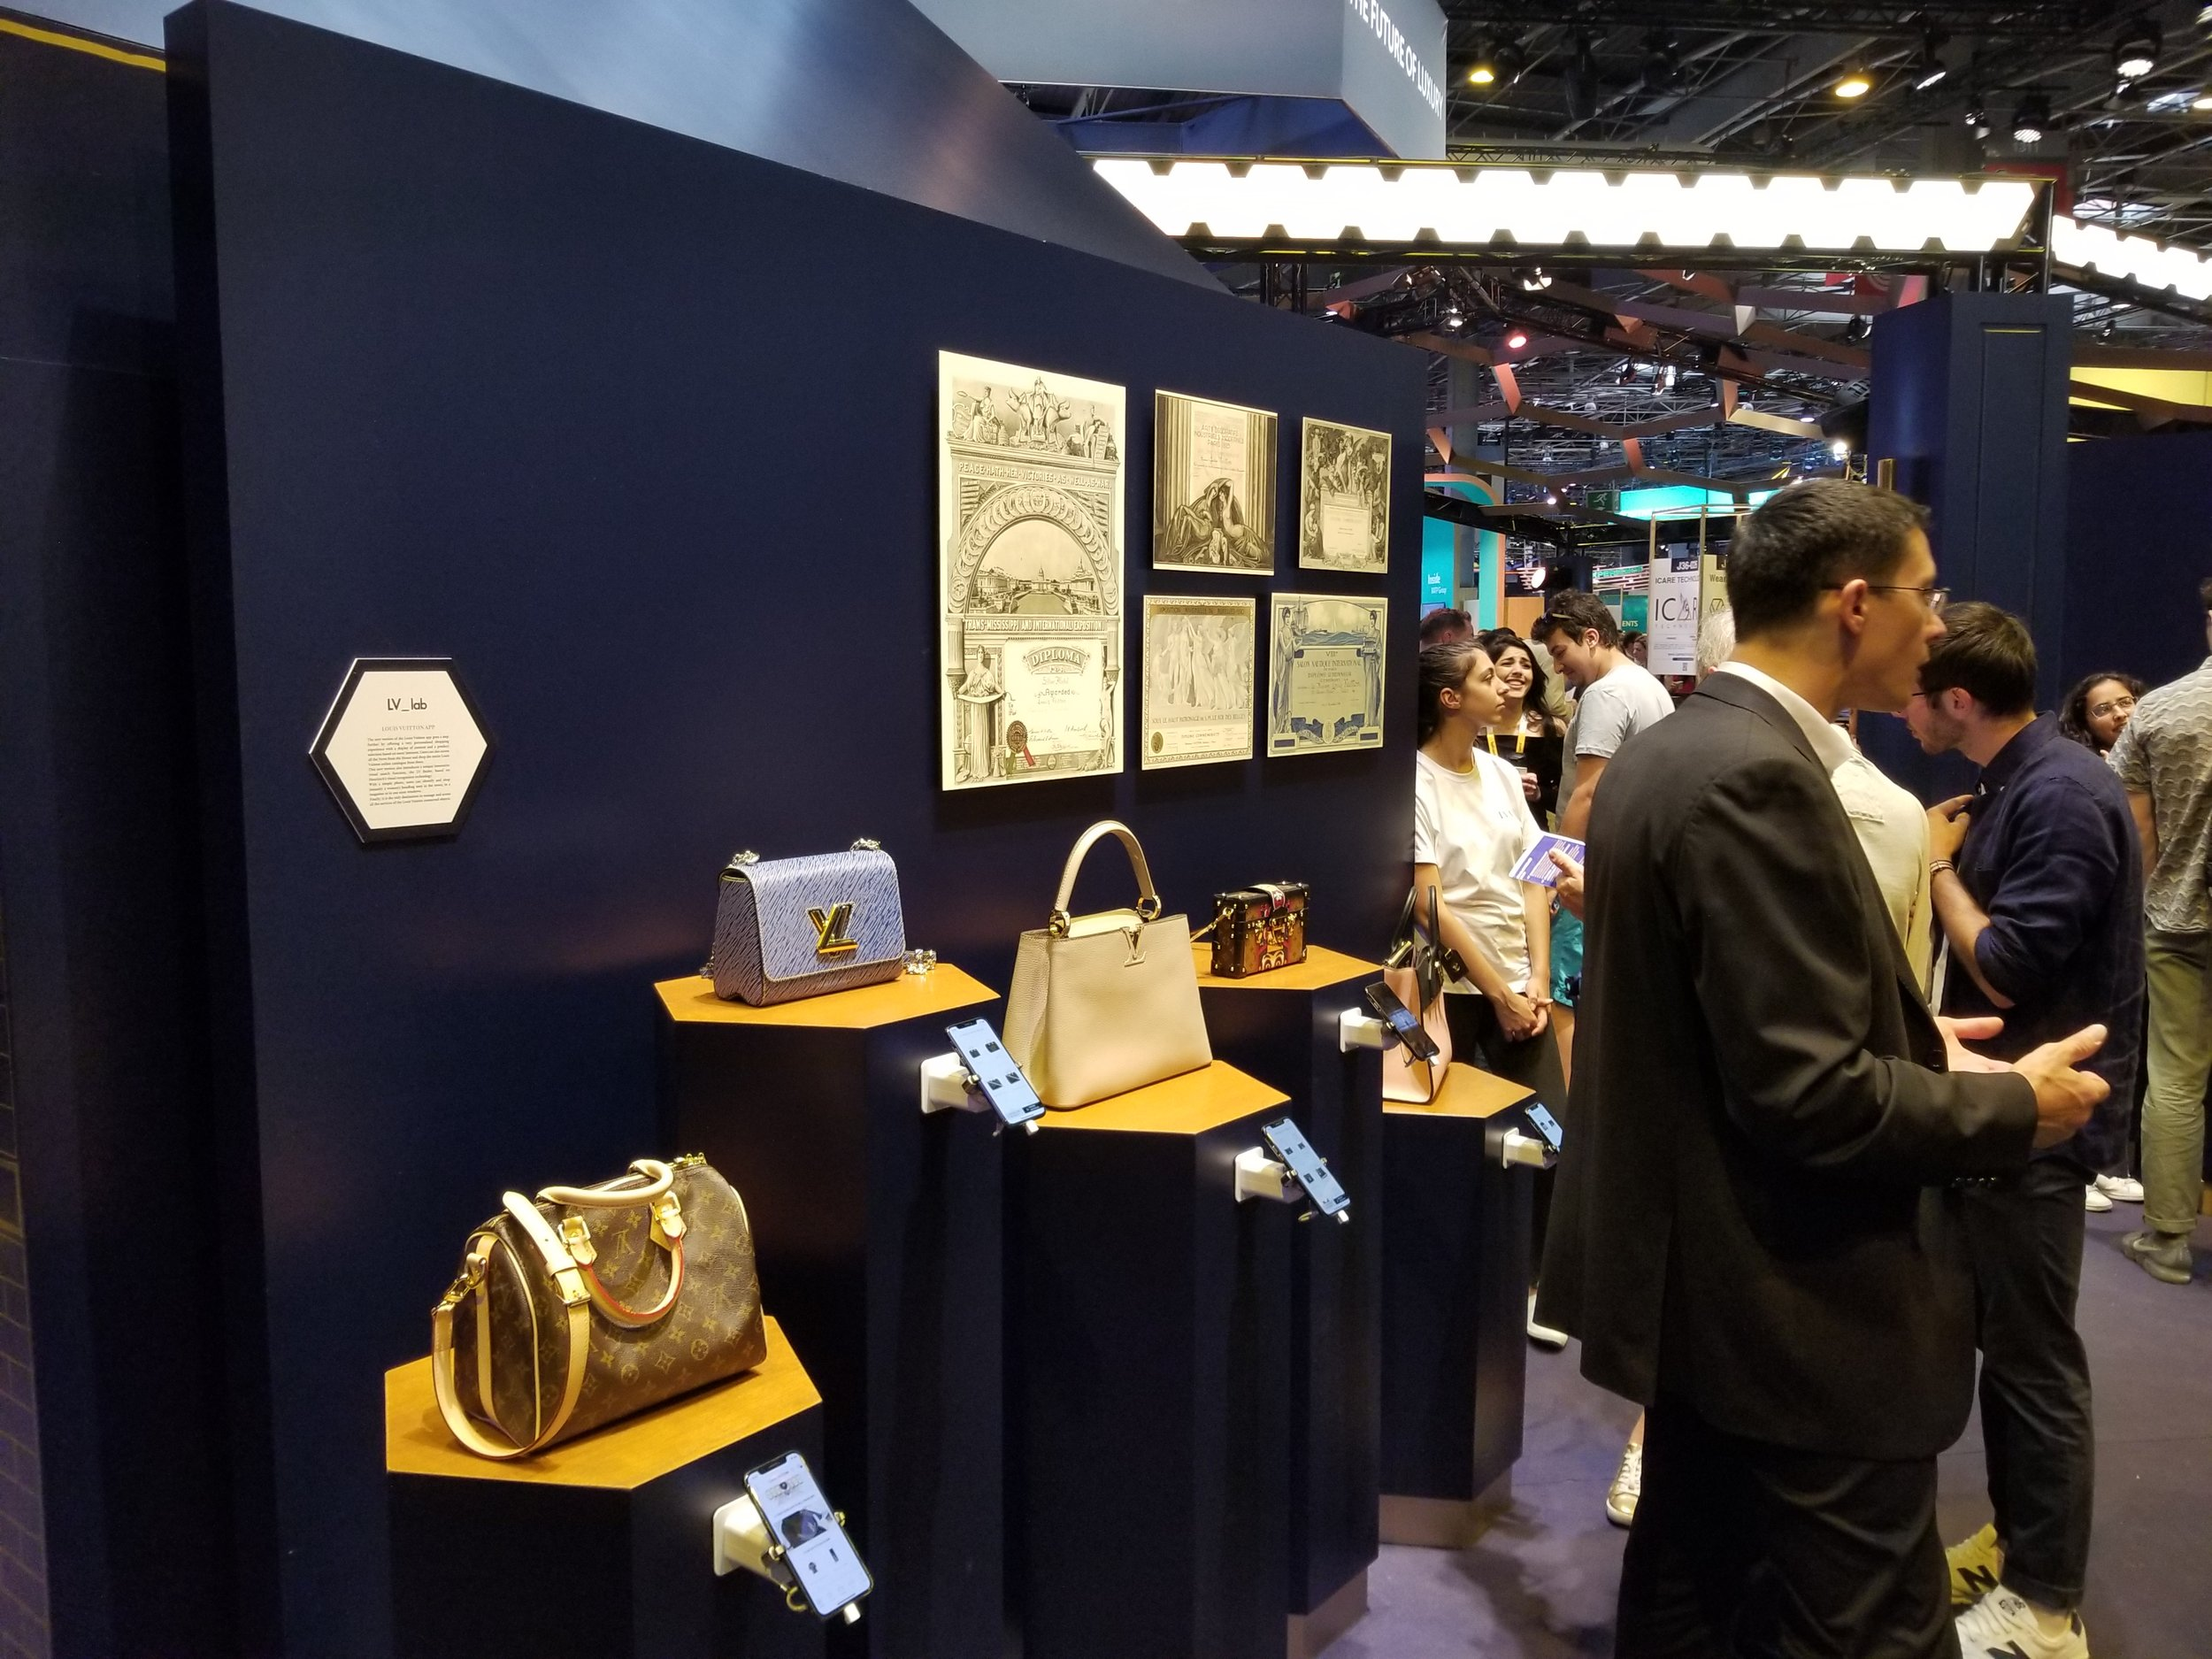 The Louis Vuitton Lab showing off their new visual search tool.